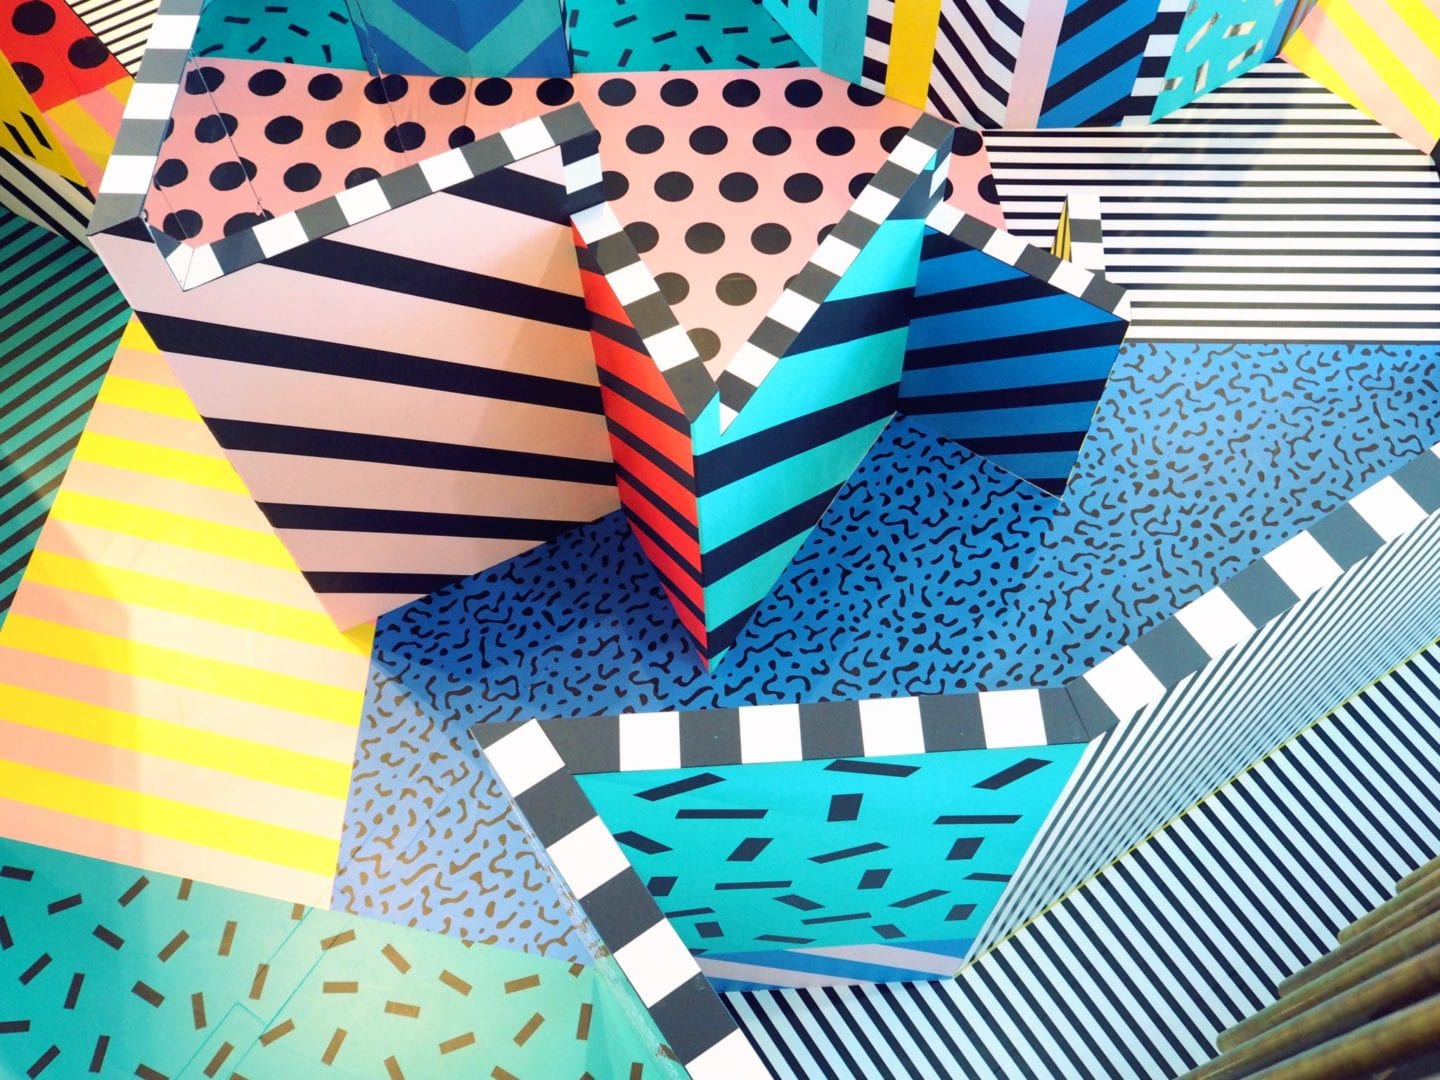 camille-walala-x-play-now-gallery-london-color-inspo